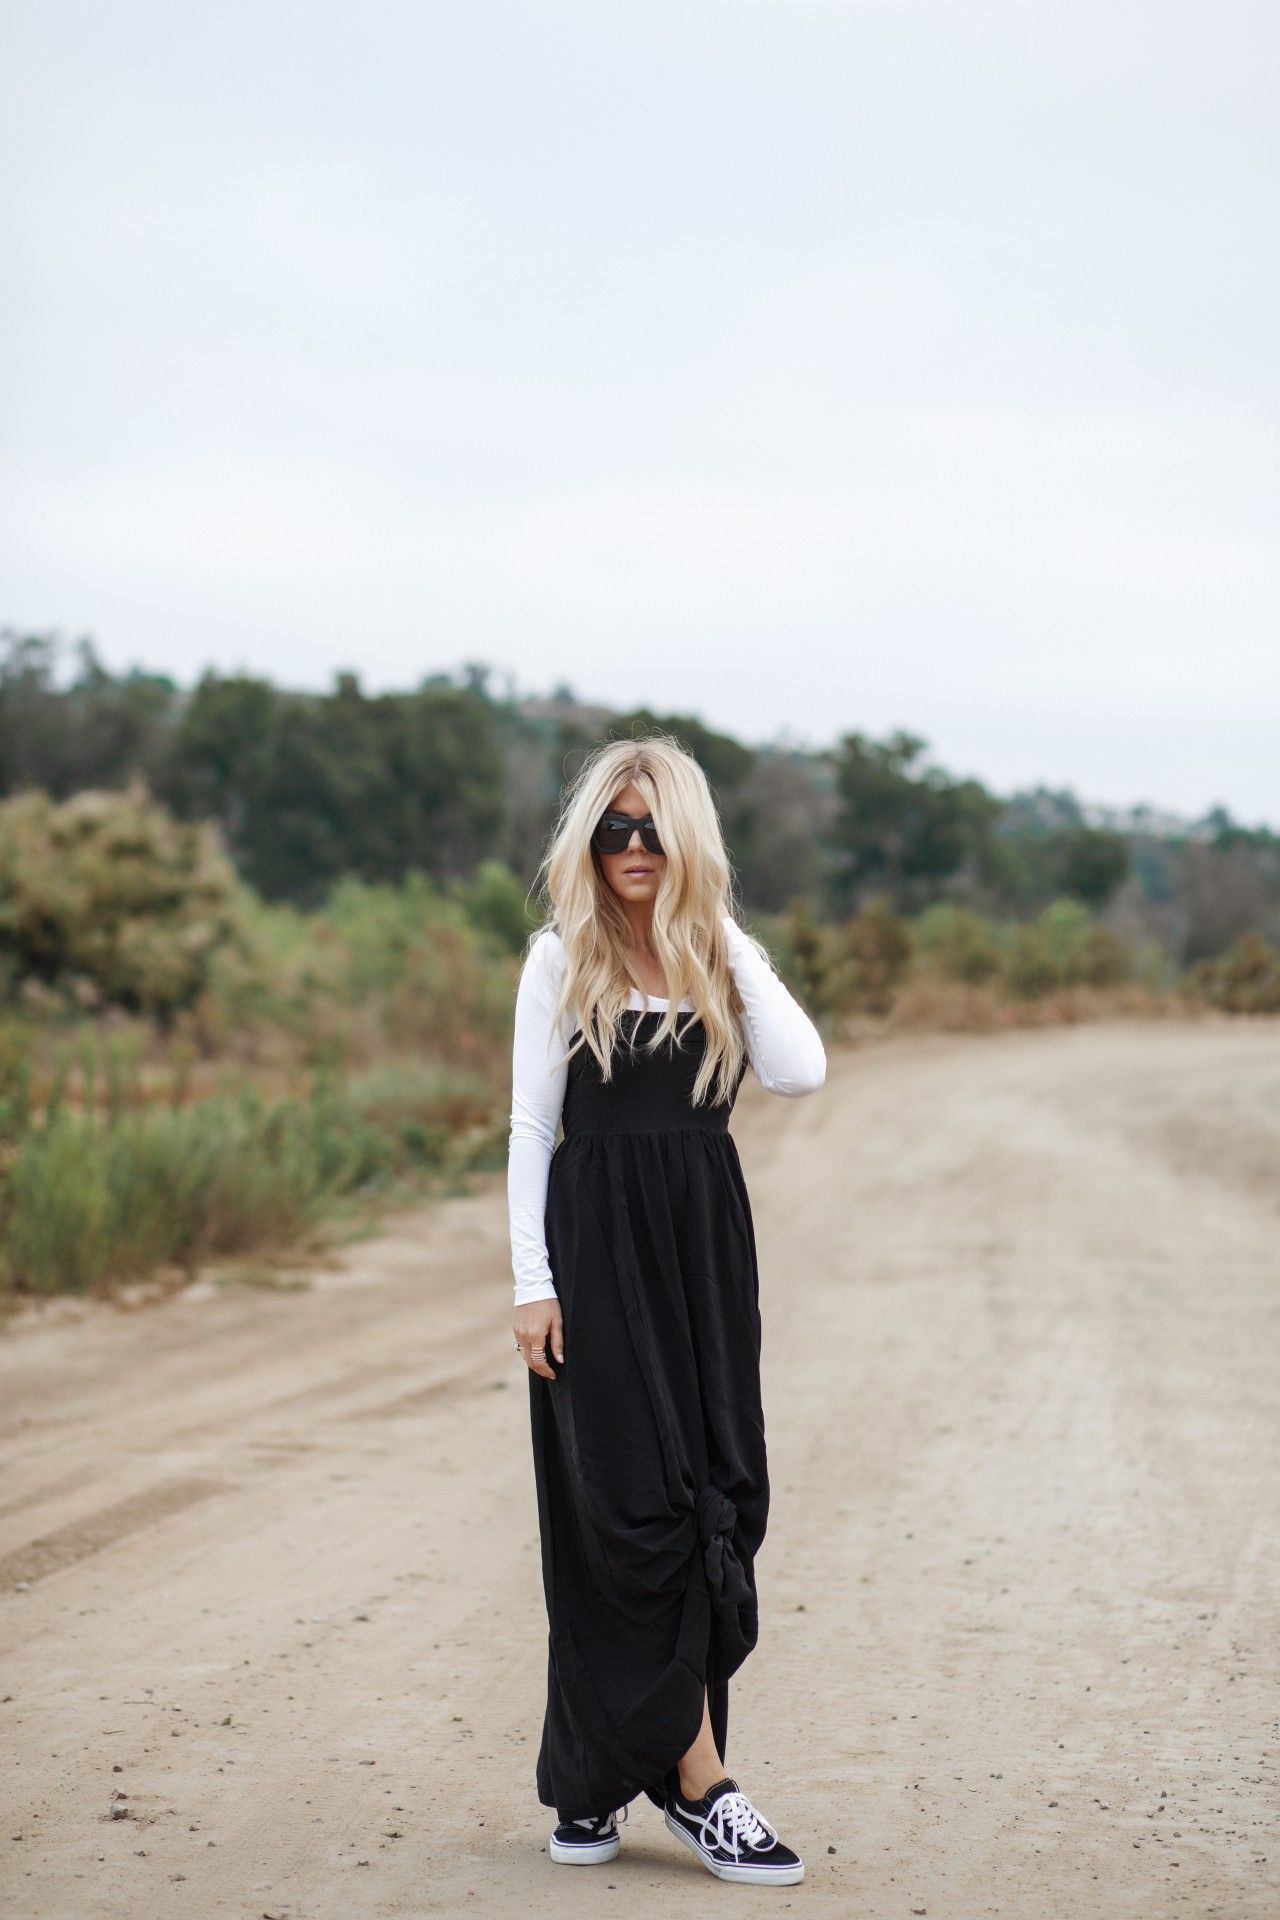 Salty Lashes Black And White Casual Look Dresses Don T Have To Be Dressy Blackdress Blackandwhite Fashion Summer Dress Outfits Long Jumper Dress Fashion [ 1920 x 1280 Pixel ]